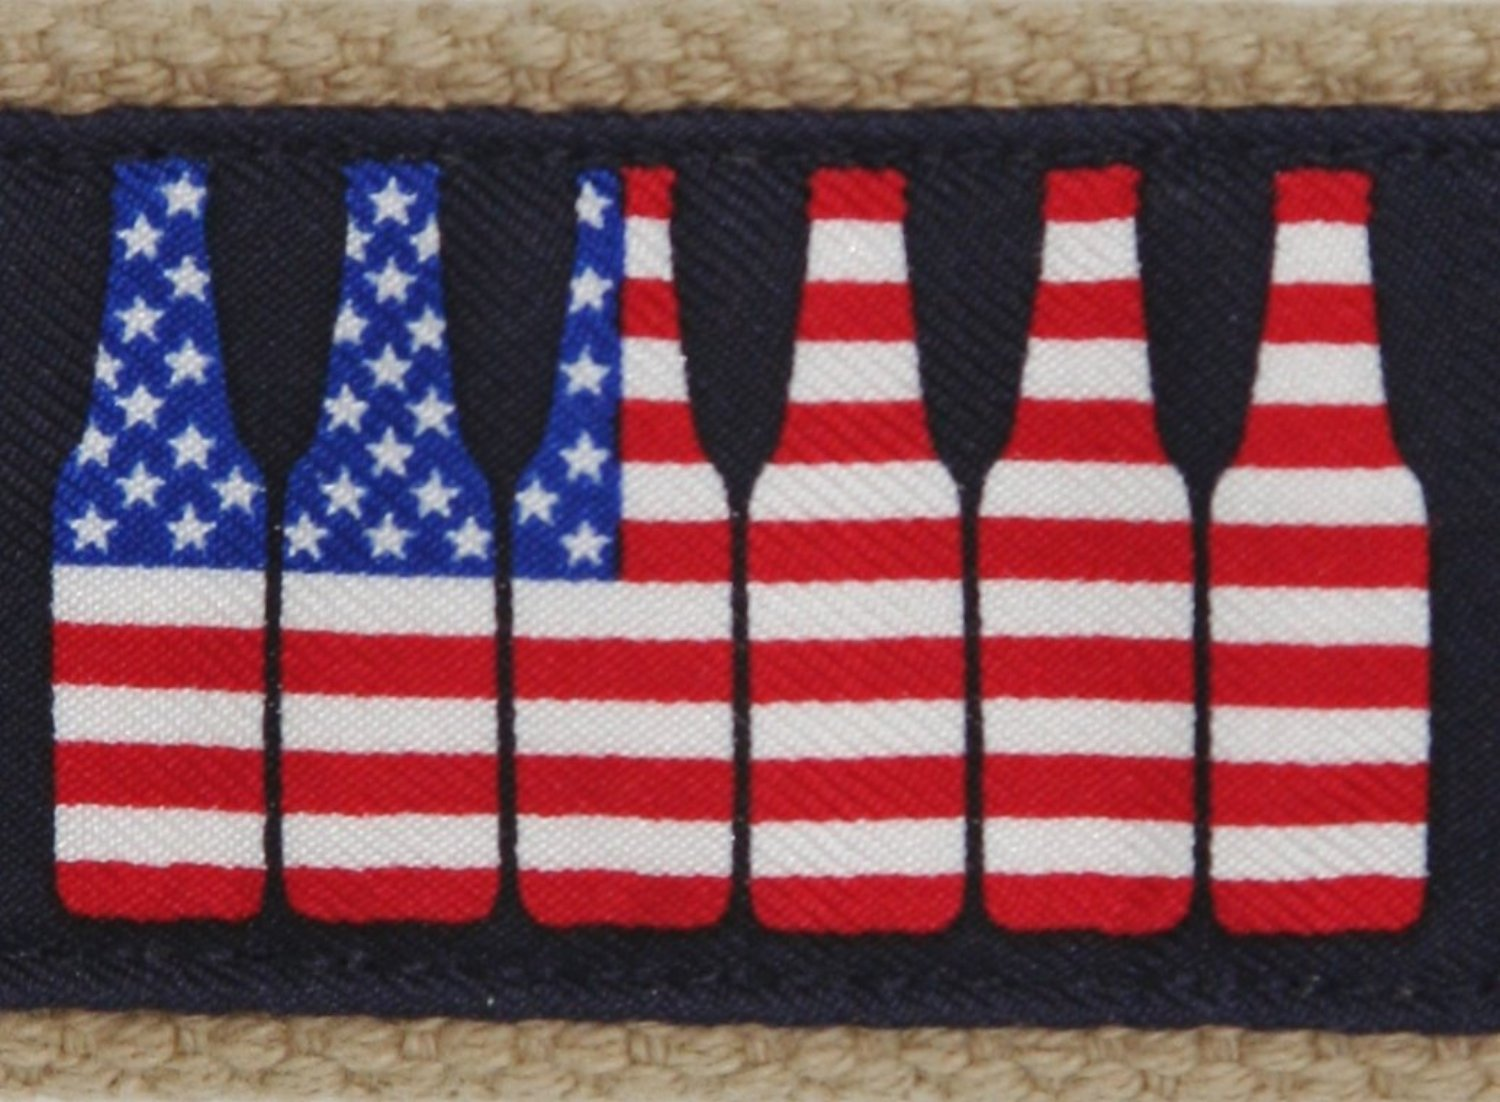 Close-up of American flag stars and stripes 6 pack of beer motif.  Preppy and patriotic styling similar to Vineyard Vines.